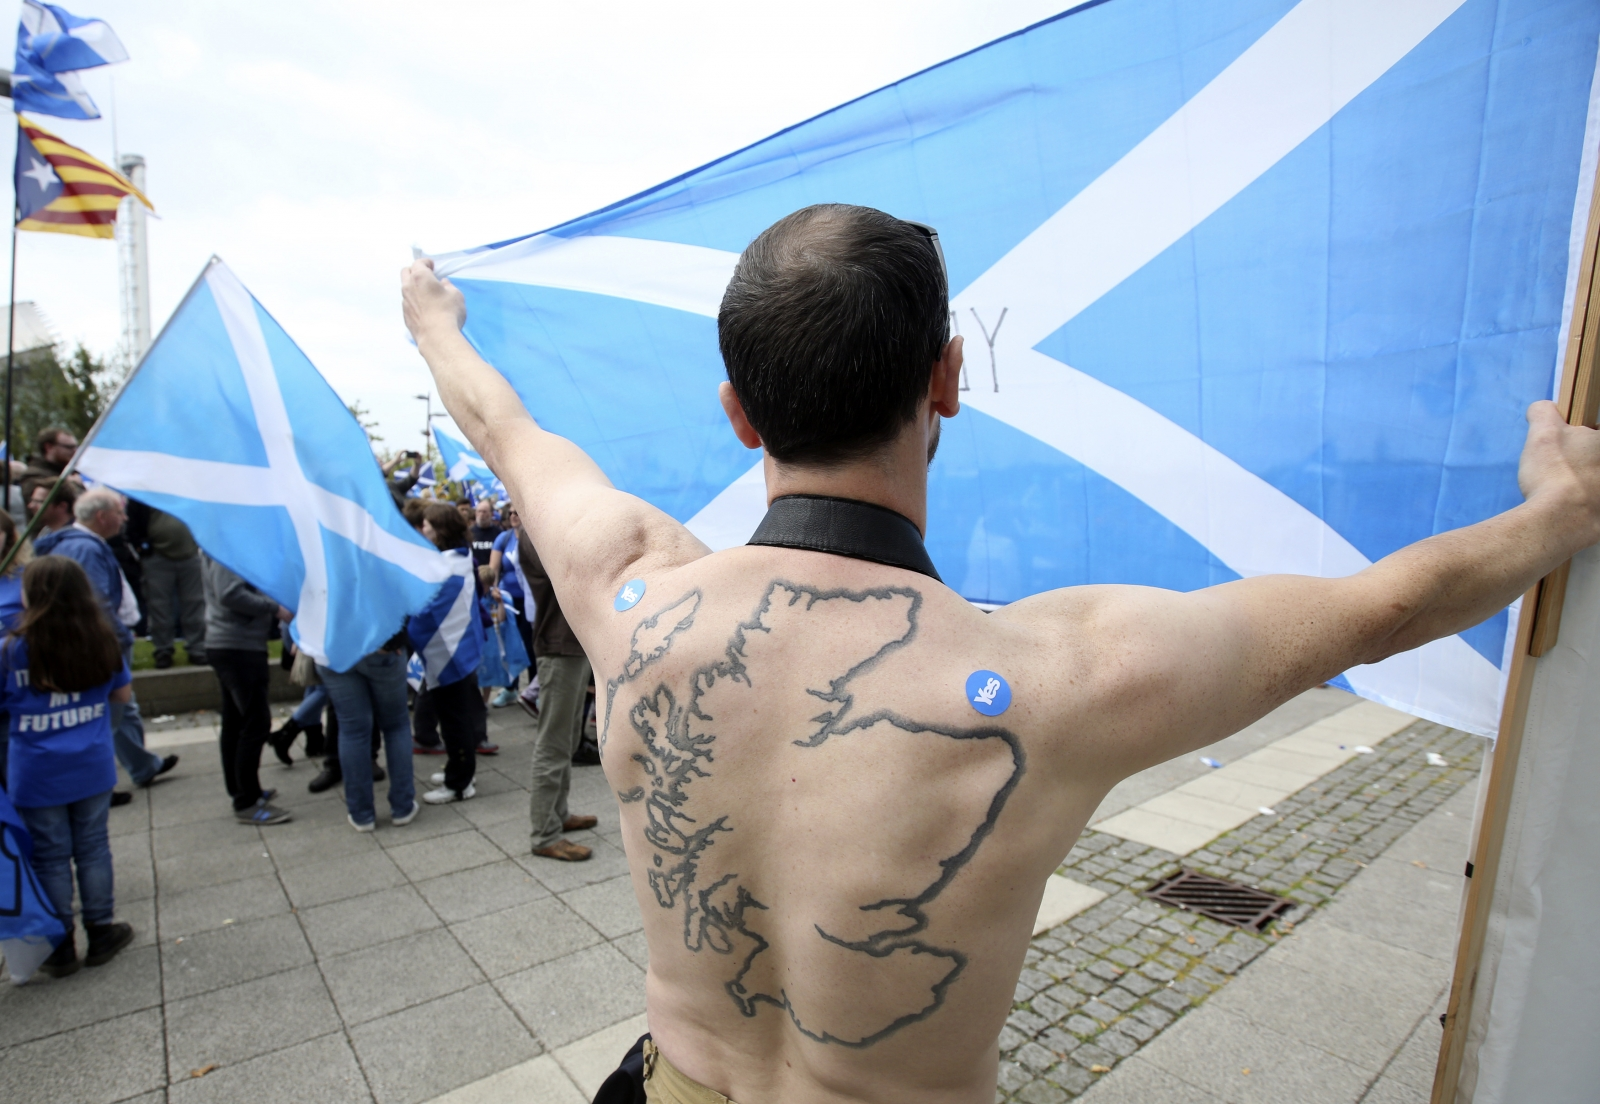 A 'Yes' supporter with a tattoo of Scotland on his back holds a Saltire flag at a rally outside the BBC in Glasgow, Scotland September 14, 2014.